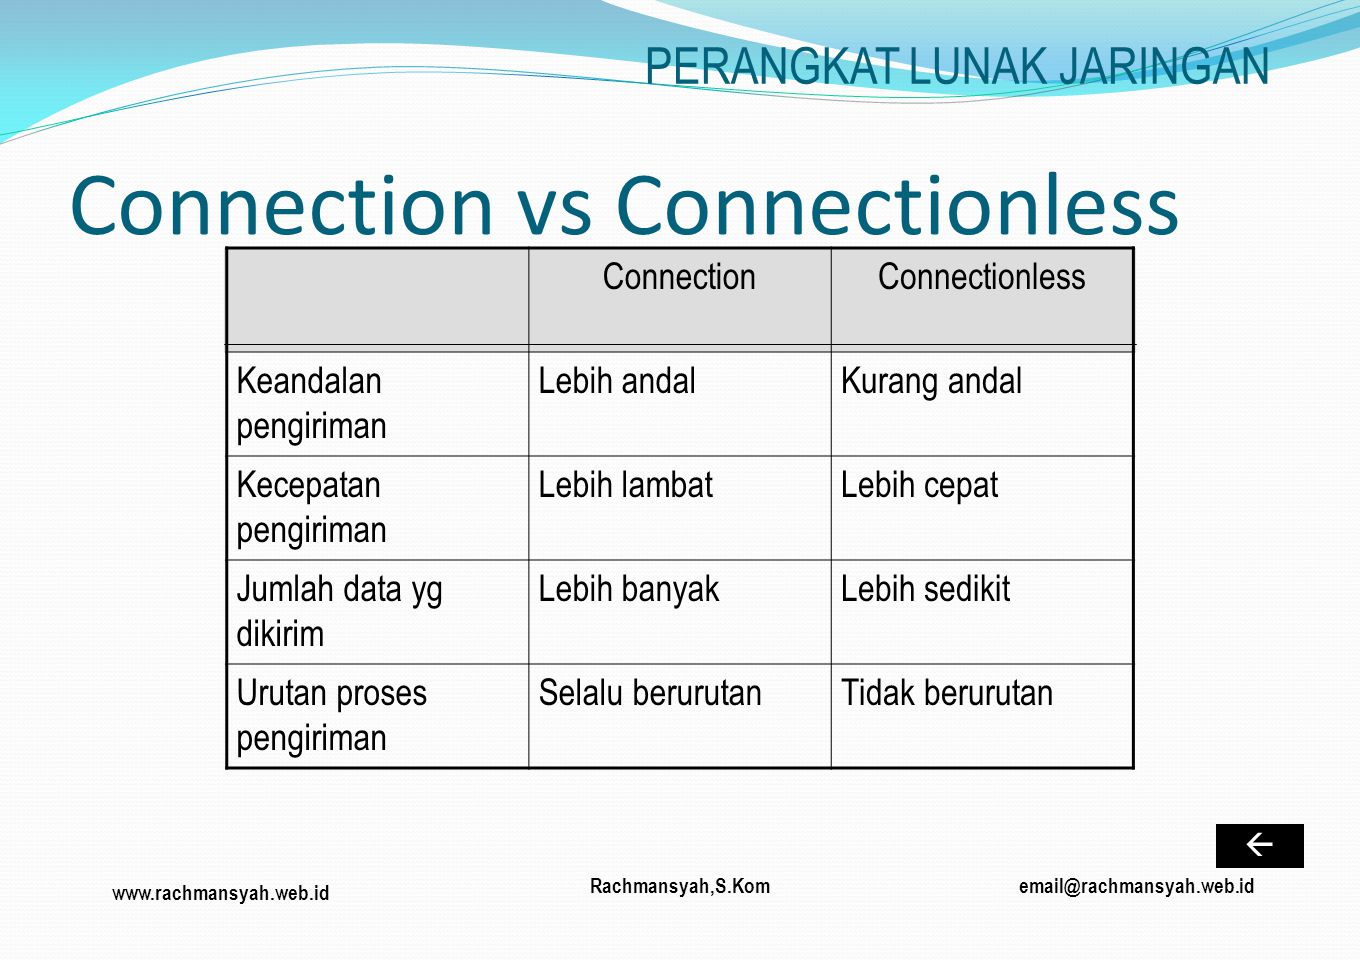 Connection vs Connectionless